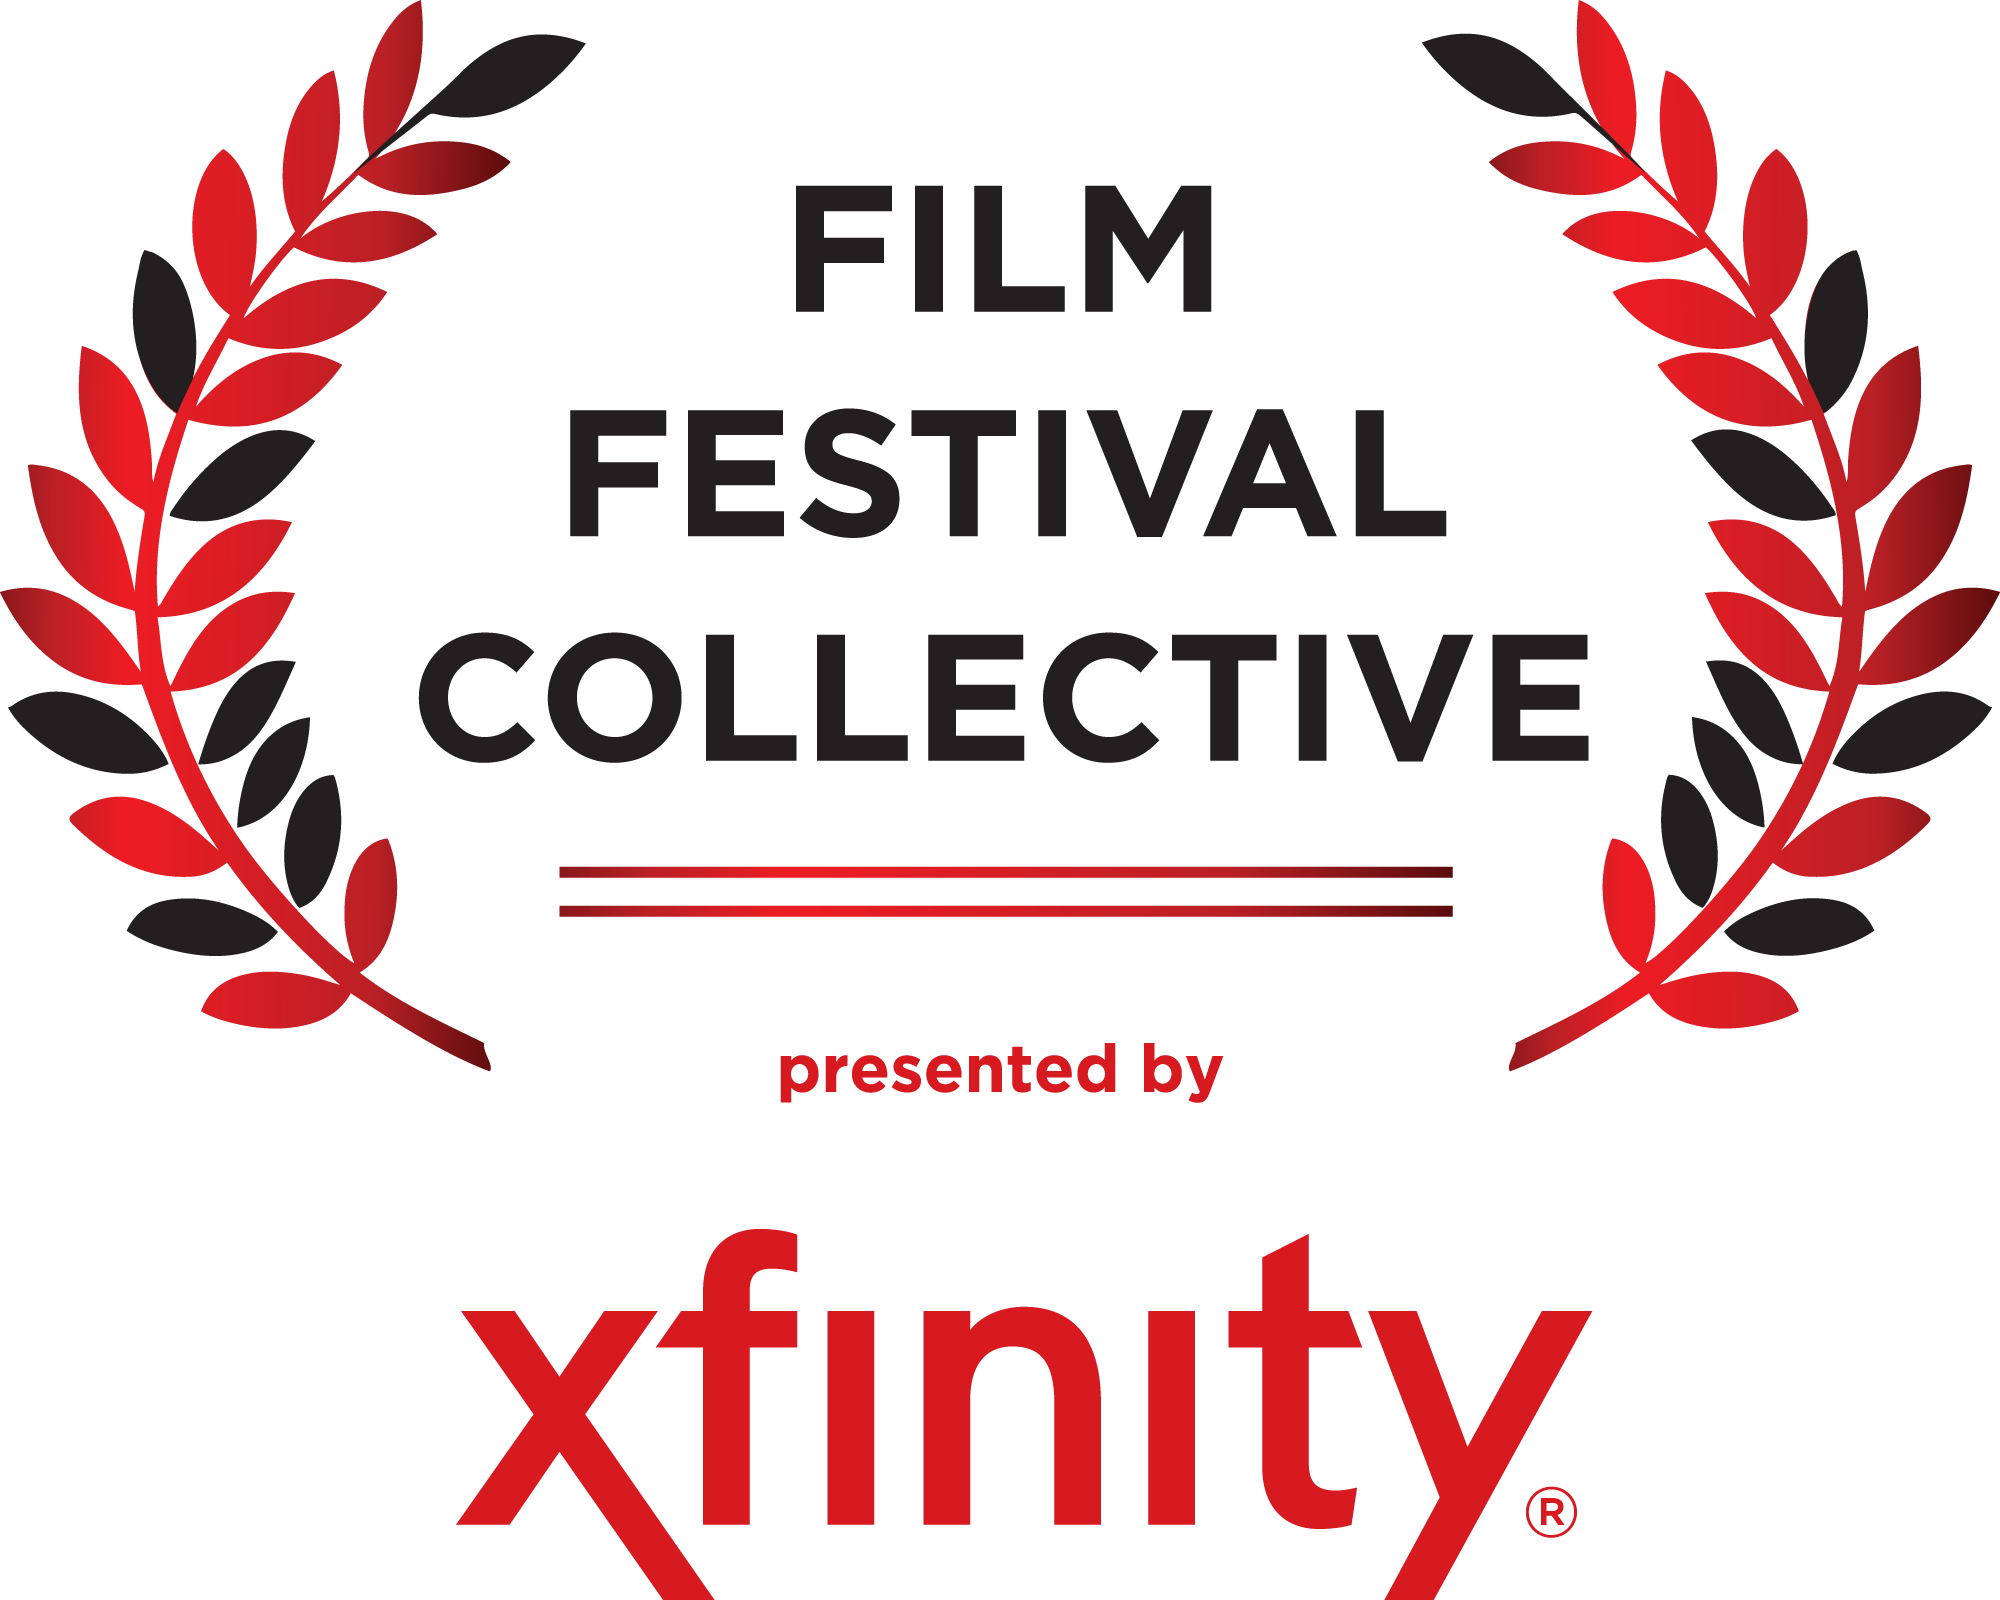 Marketing kit collective presented. Movie clipart film festival